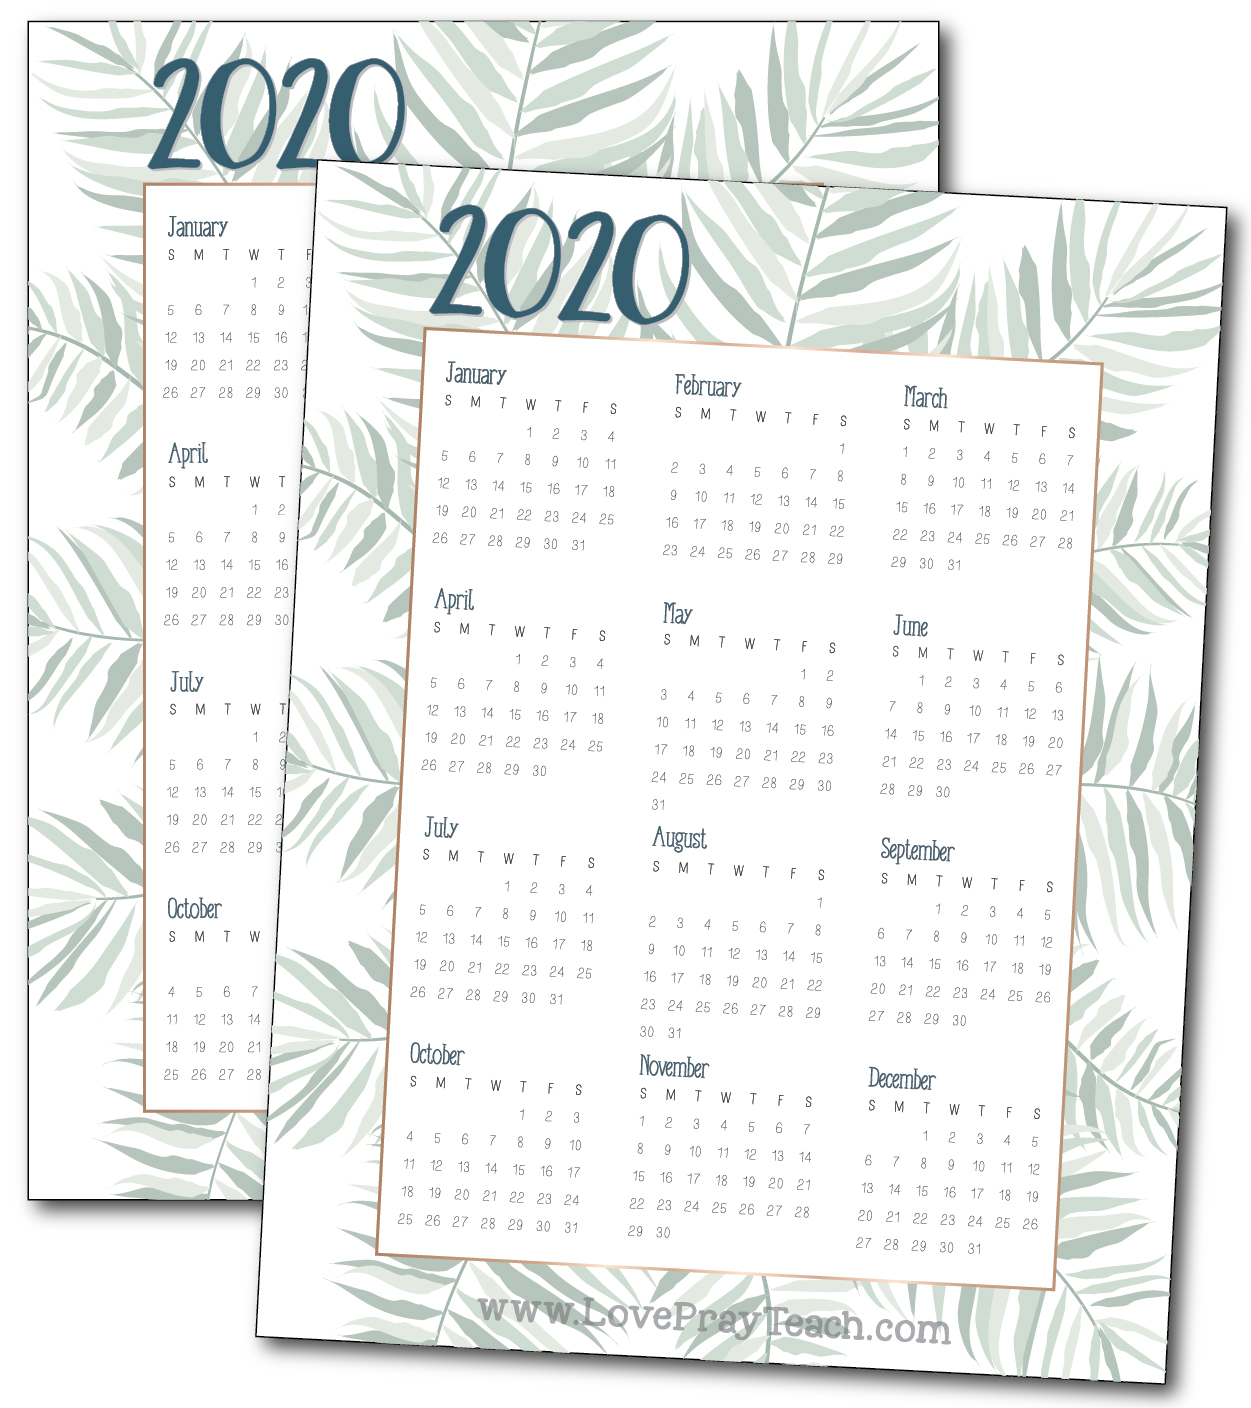 "2020 Youth Theme: ""Go and Do"" (1 Nephi 3:7) Printable Packet for Latter-day Saint Young Women www.LovePrayTeach.com"